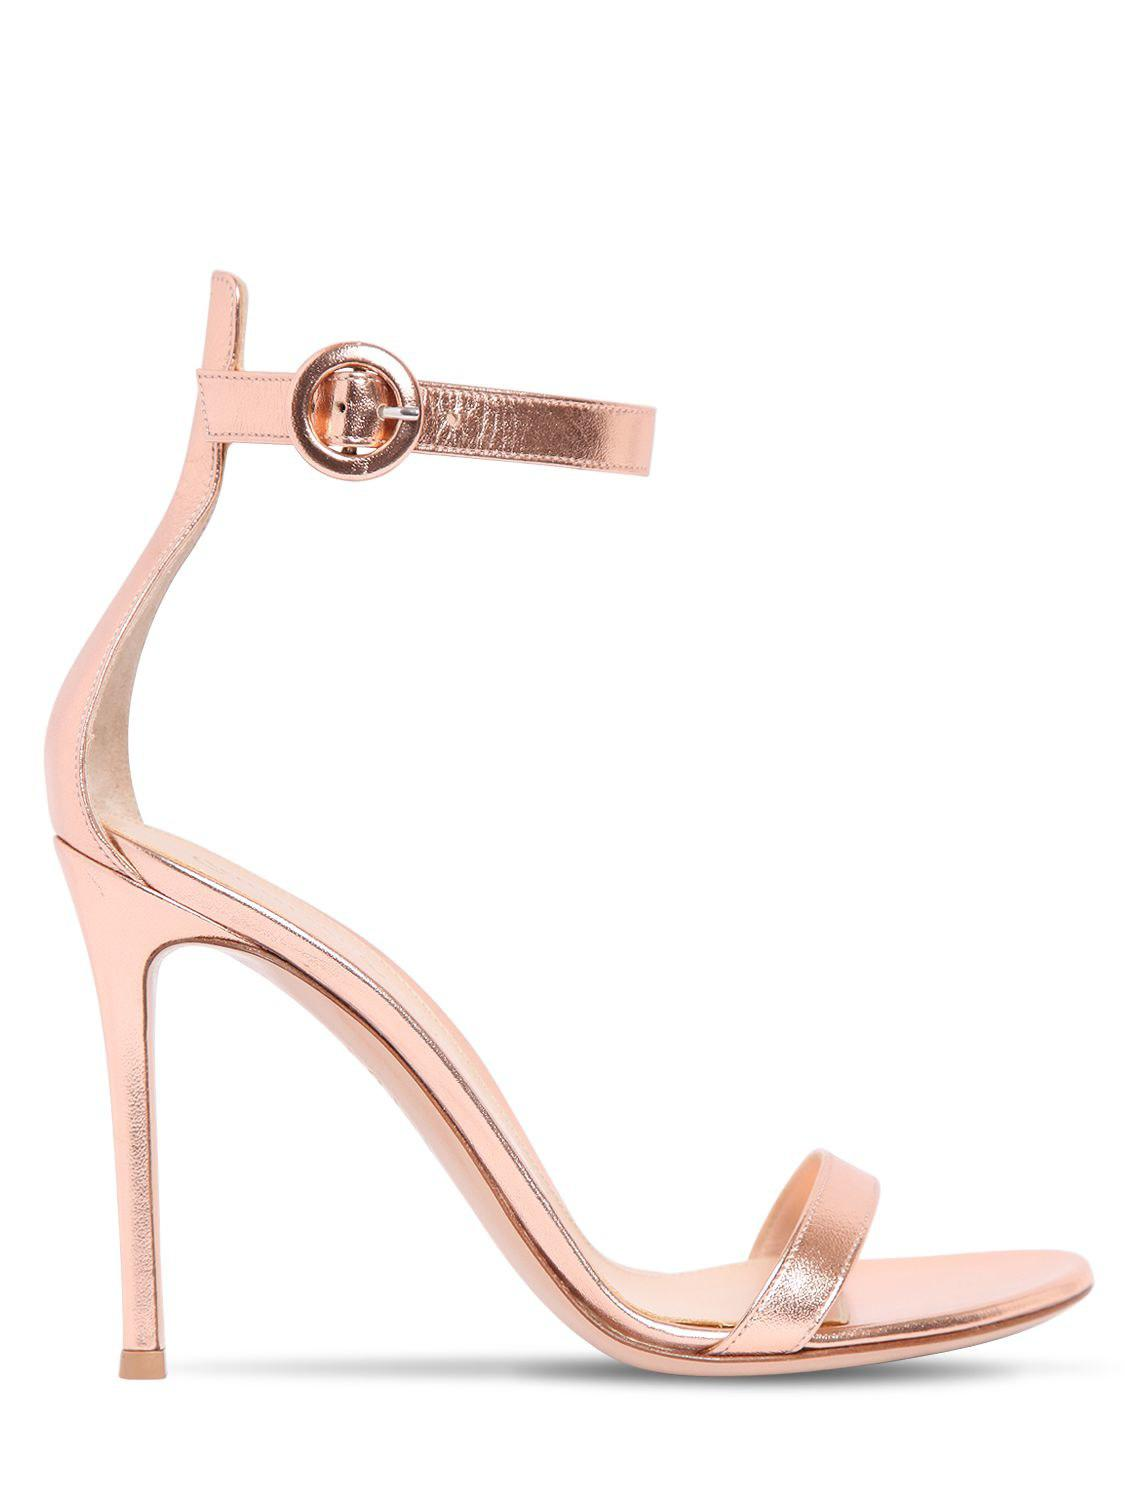 Gianvito Rossi 100MM PORTOFINO PLEXI & LEATHER SANDALS kJPTAjrFOZ